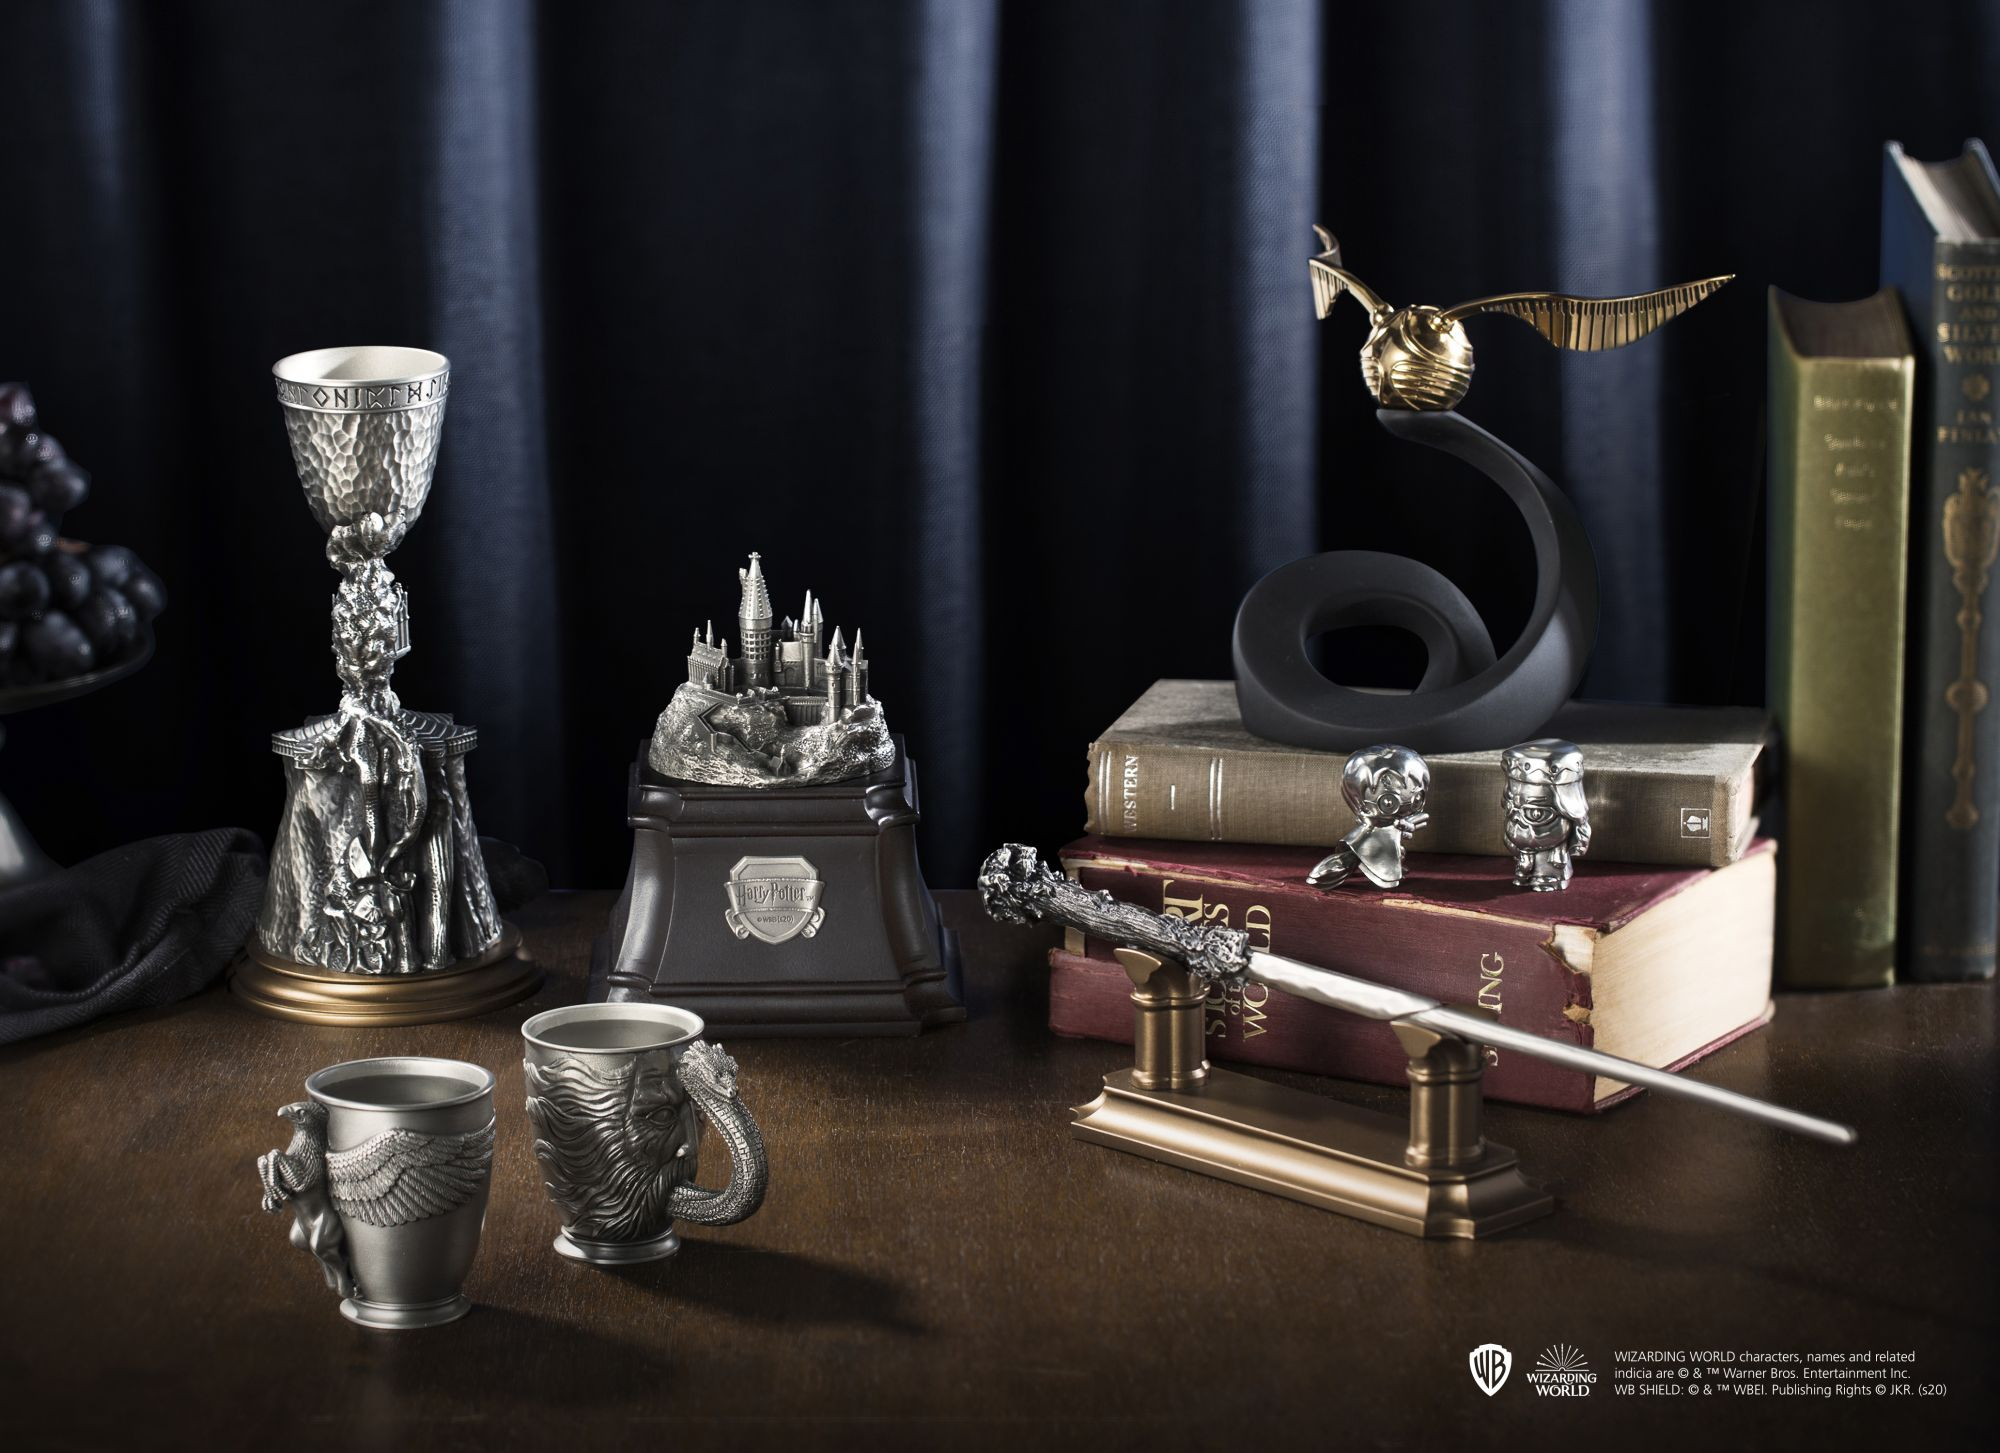 Pewter collectibles from the Wizarding World of Harry Potter (Photo: Royal Selangor)